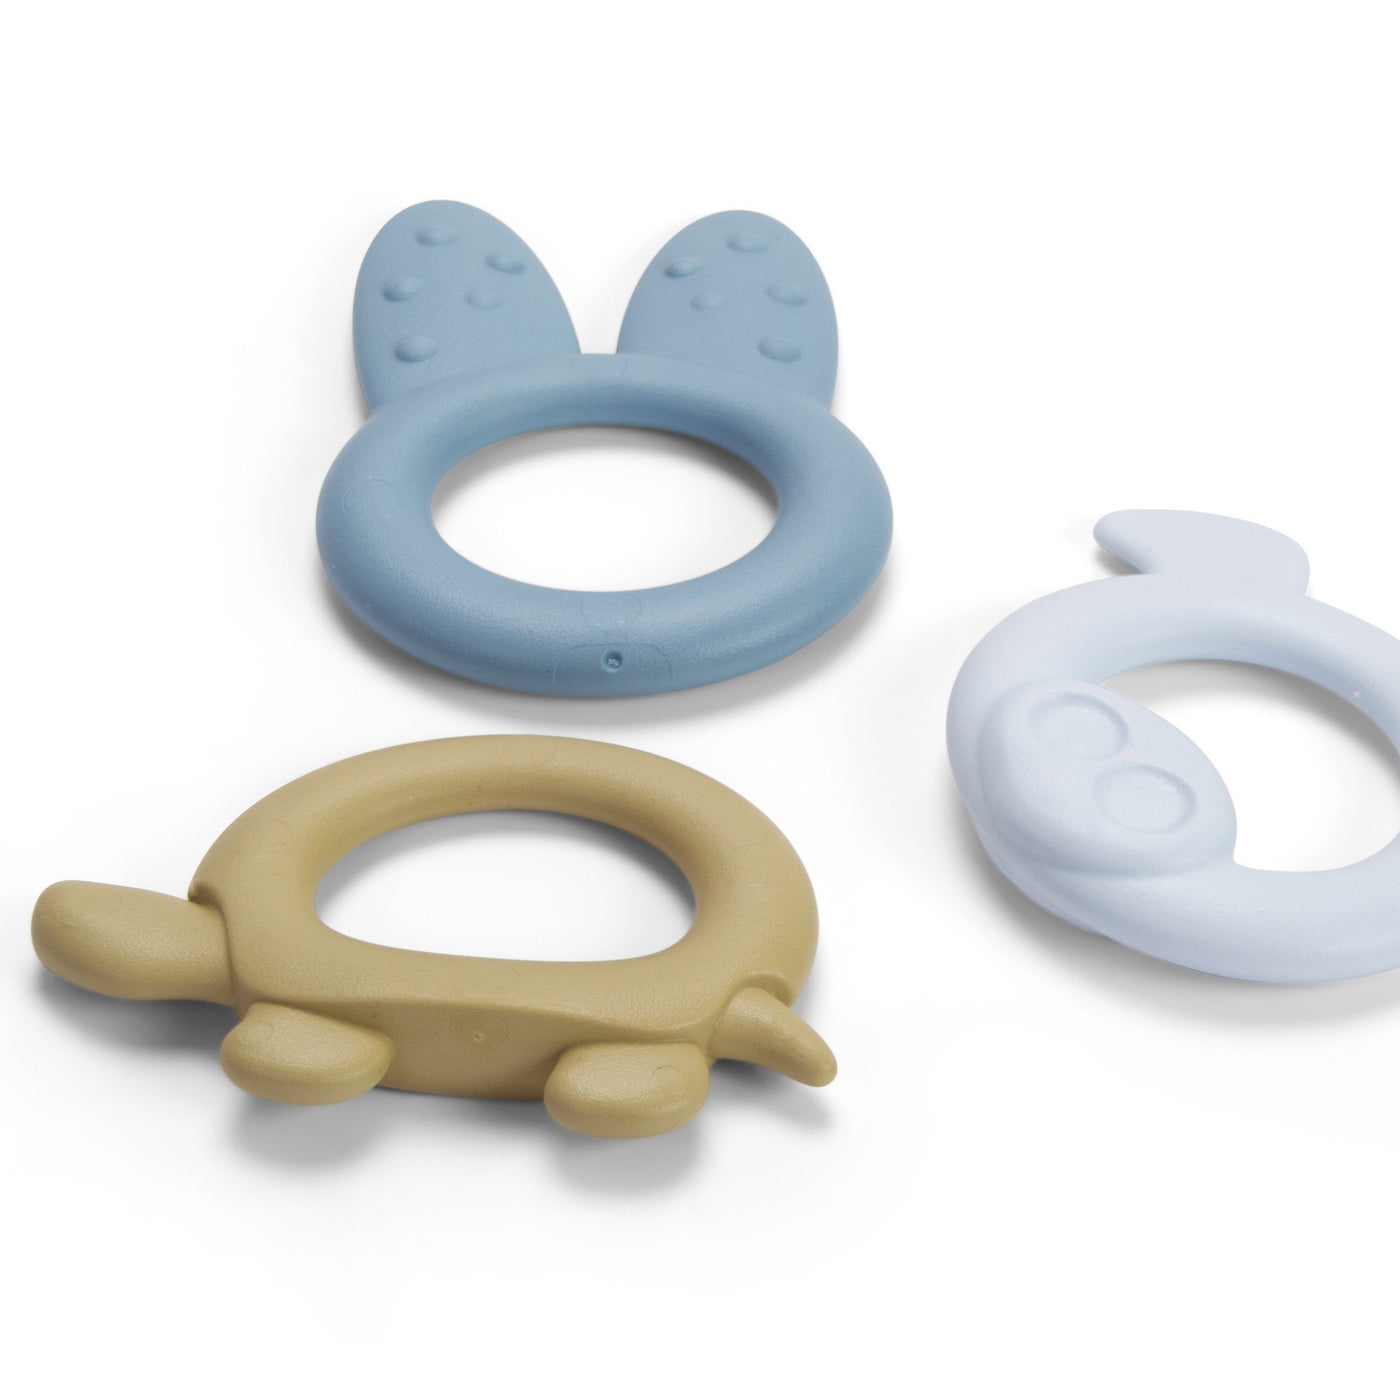 Tiny Teether Rings Blue - Set of 3